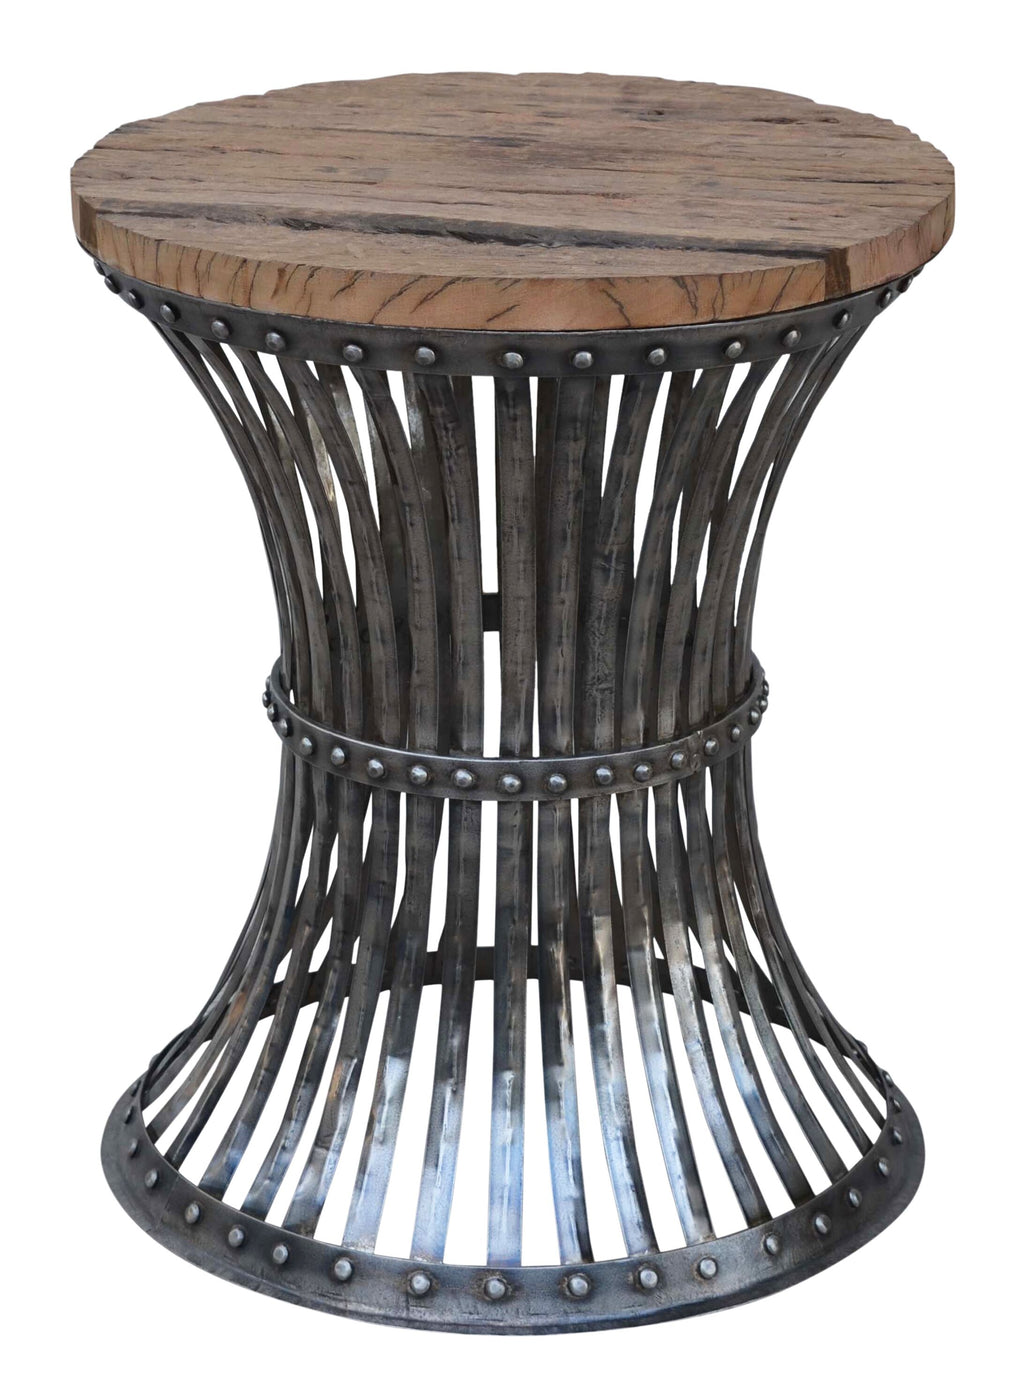 Handmade Rustic Inverted Stool - Notbrand